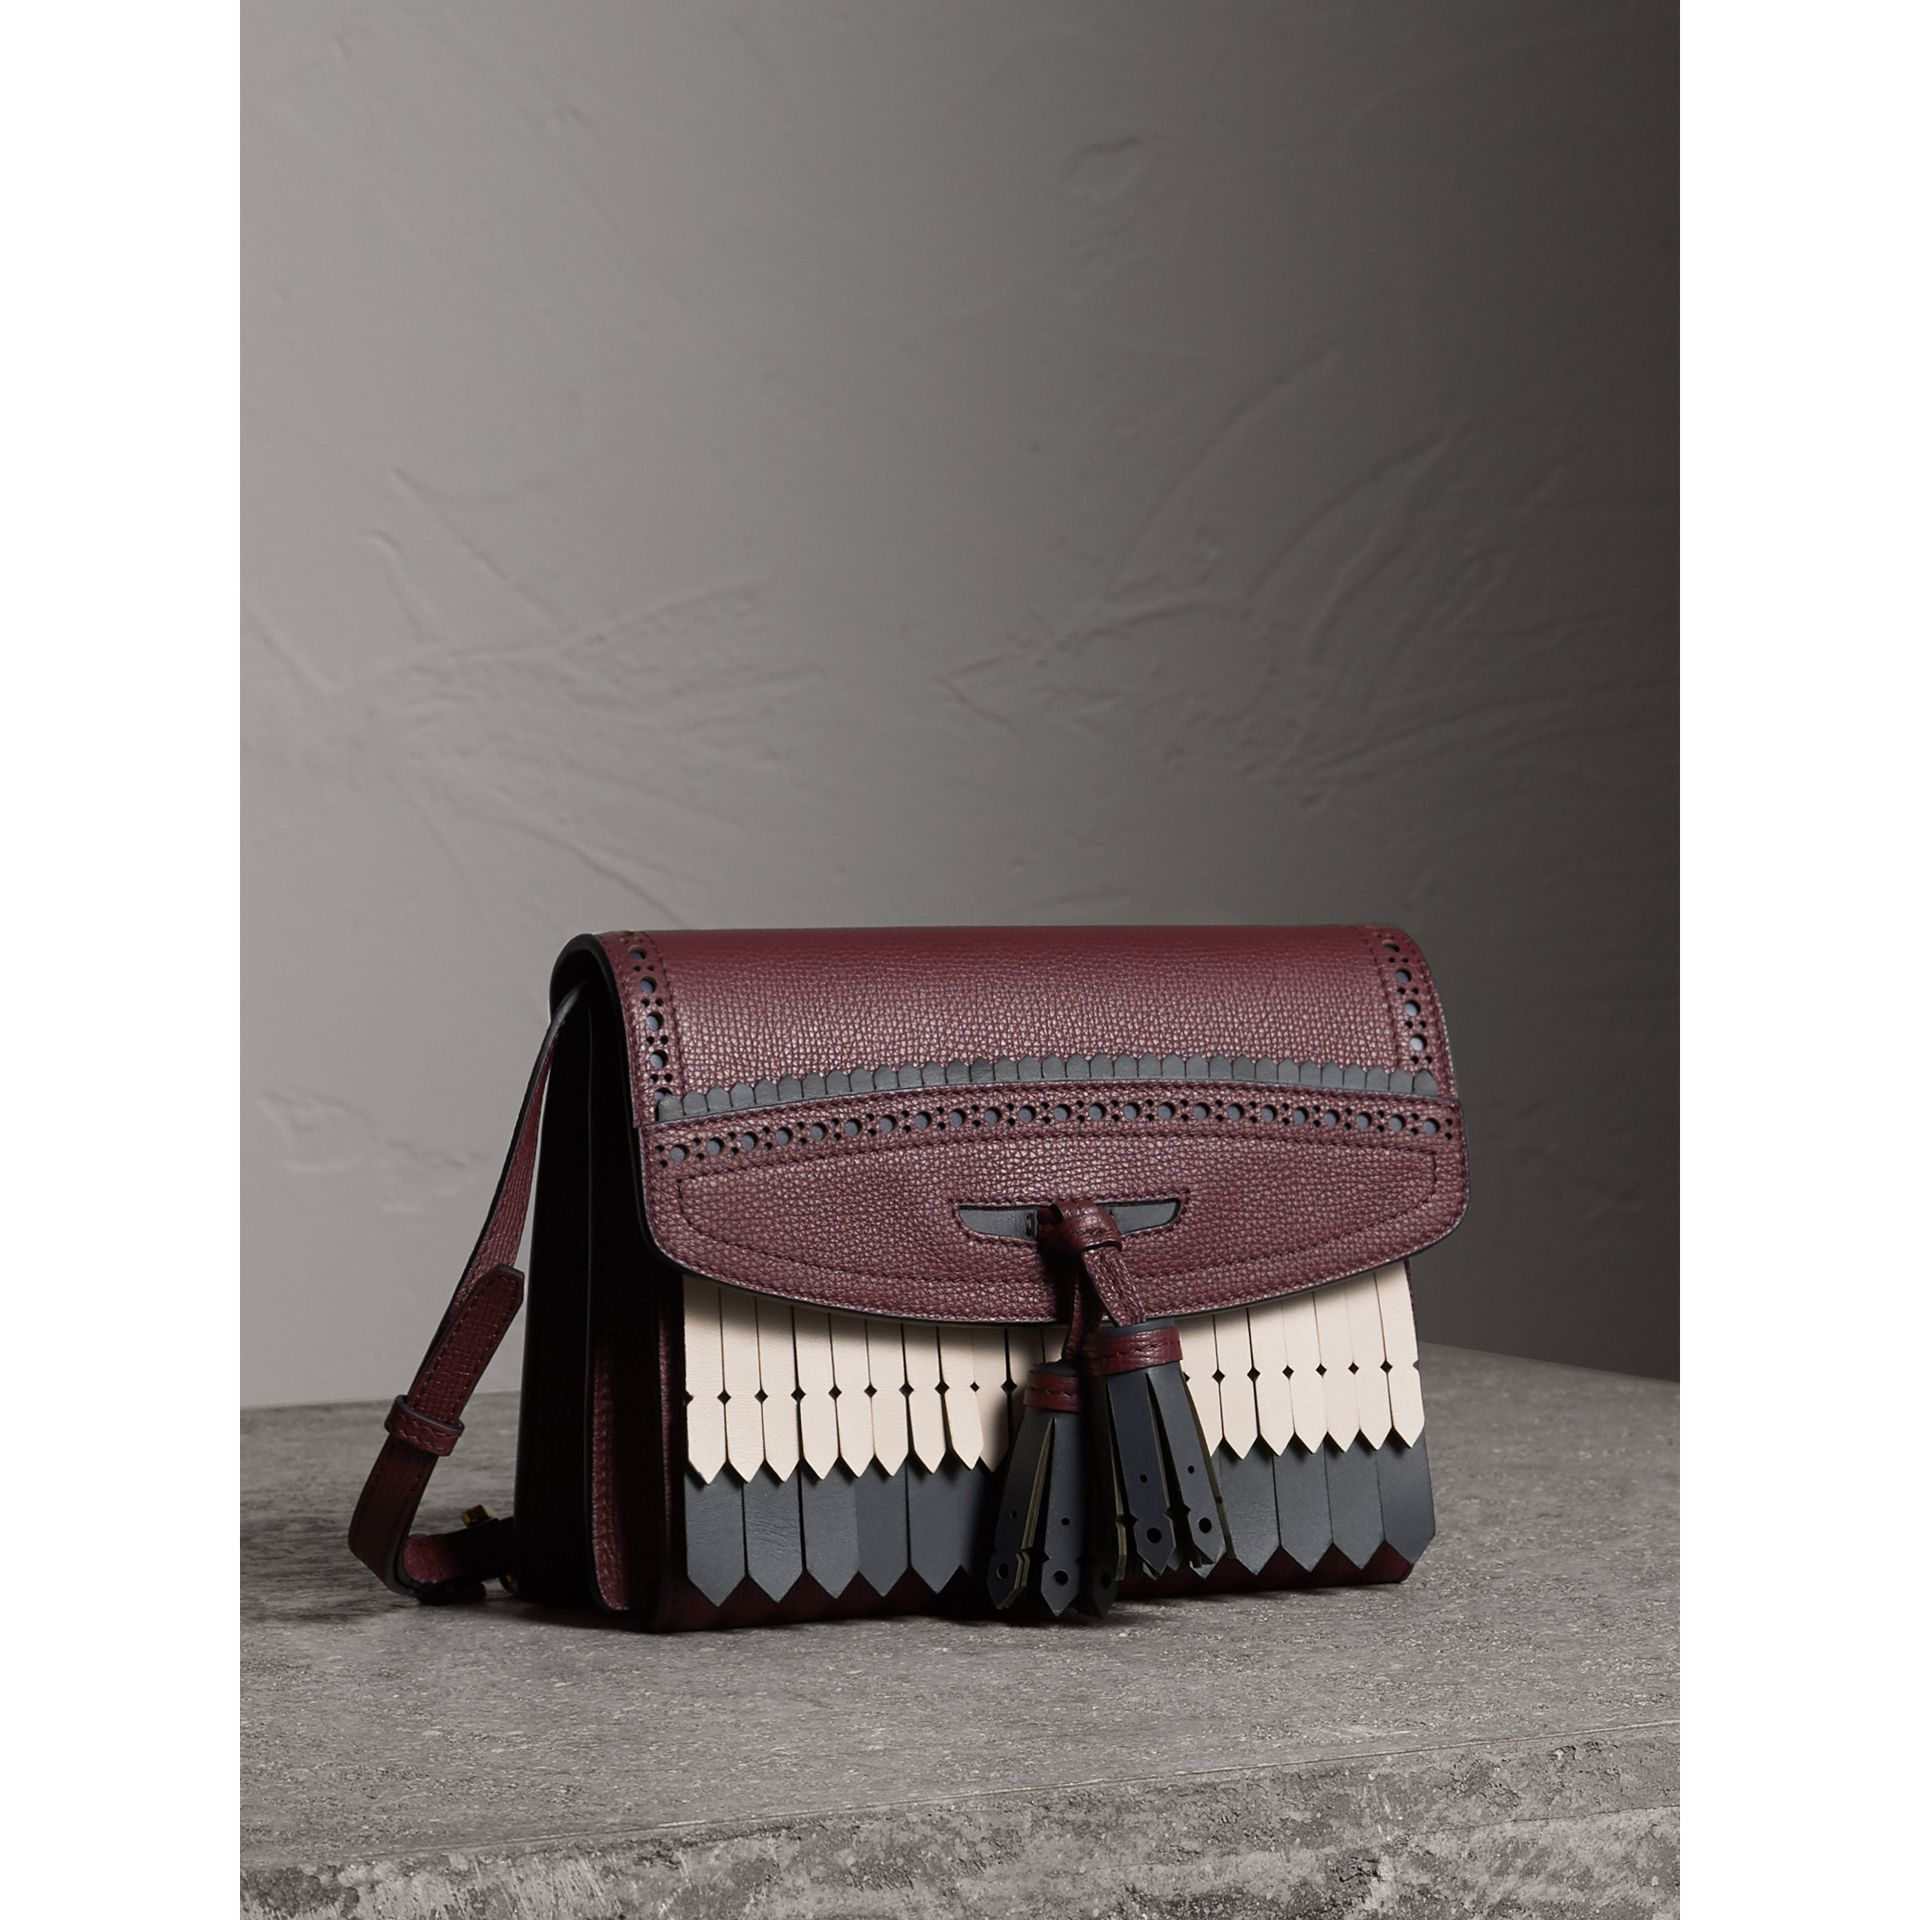 Brogue and Fringe Detail Leather Crossbody Bag in Mahogany Red - Women | Burberry Singapore - gallery image 5